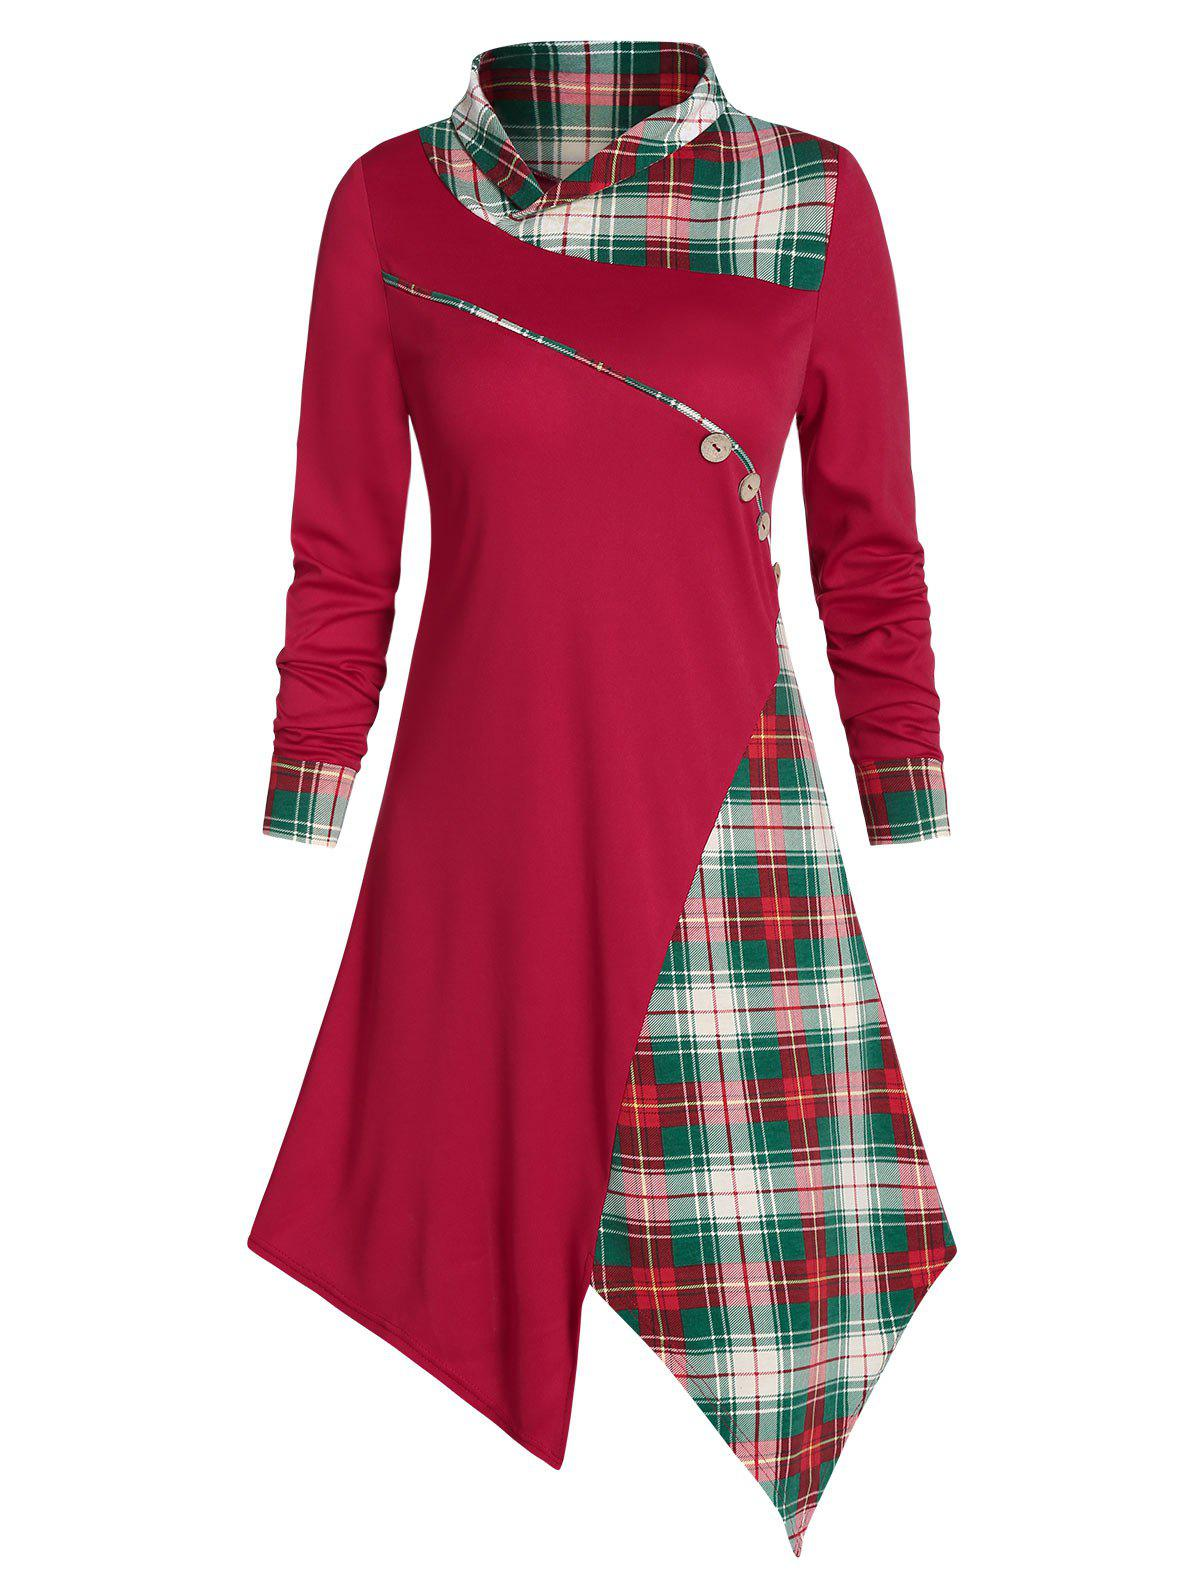 Plaid Buttons Asymmetric Midi Dress - RED WINE 2XL